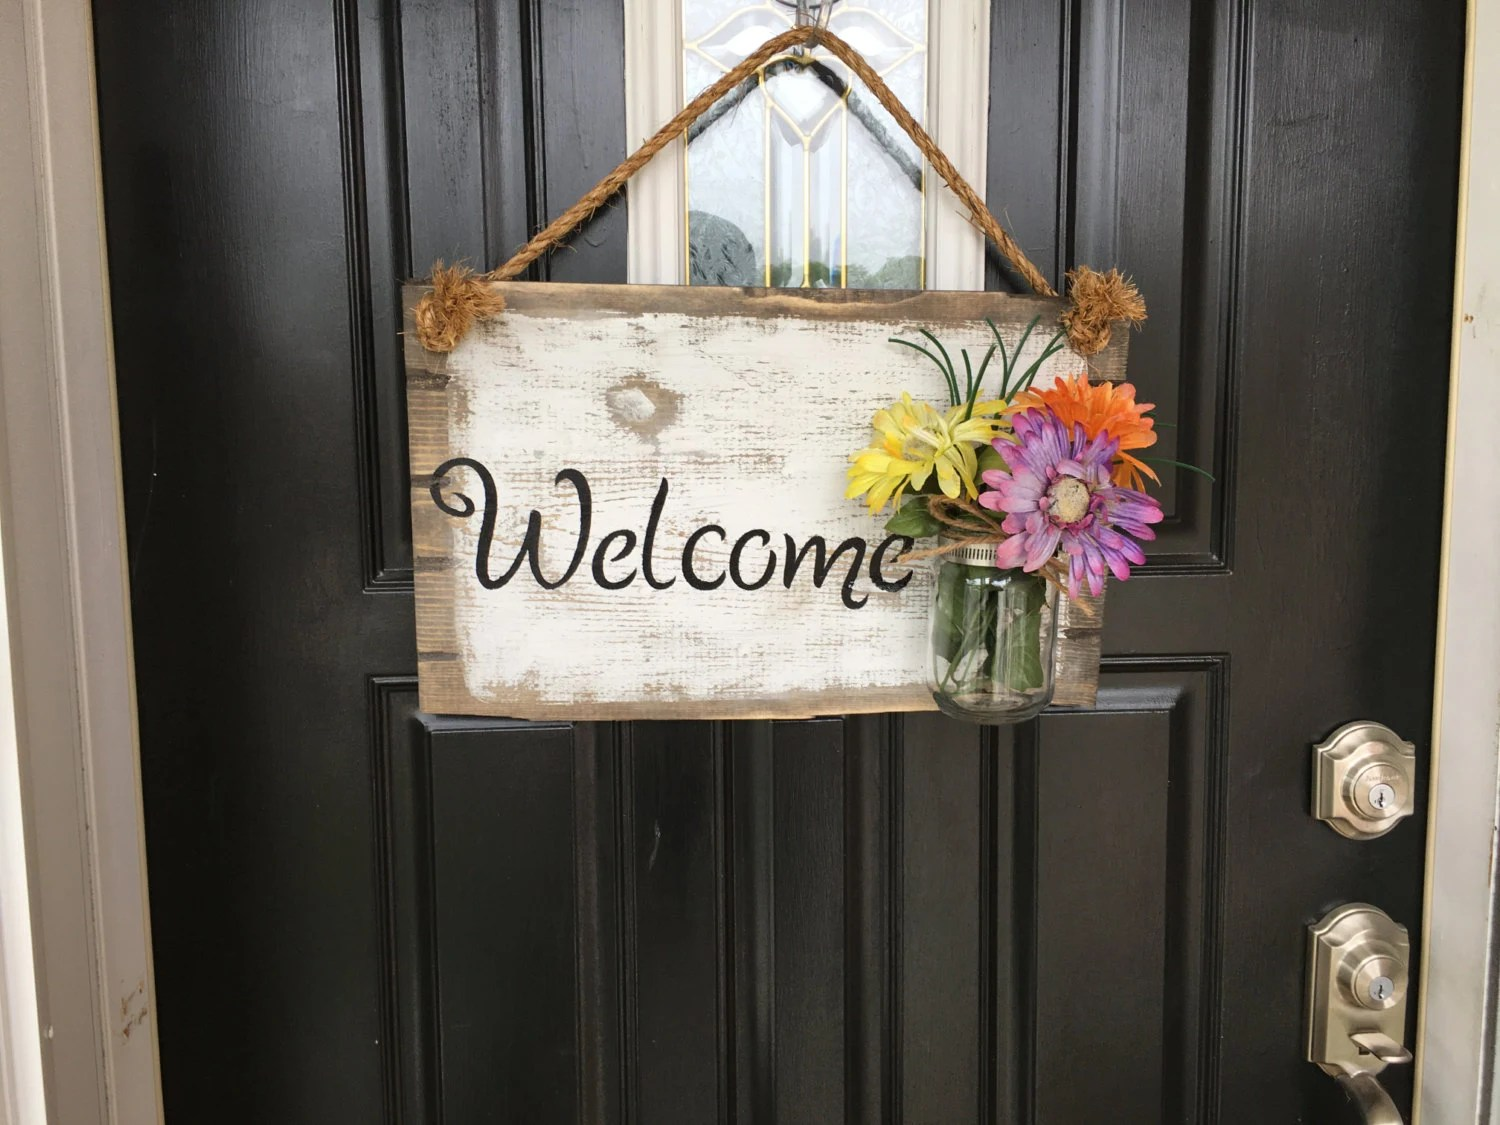 Le Meilleur Front Door Welcome Sign Front Porch Welcome Sign Rustic Ce Mois Ci